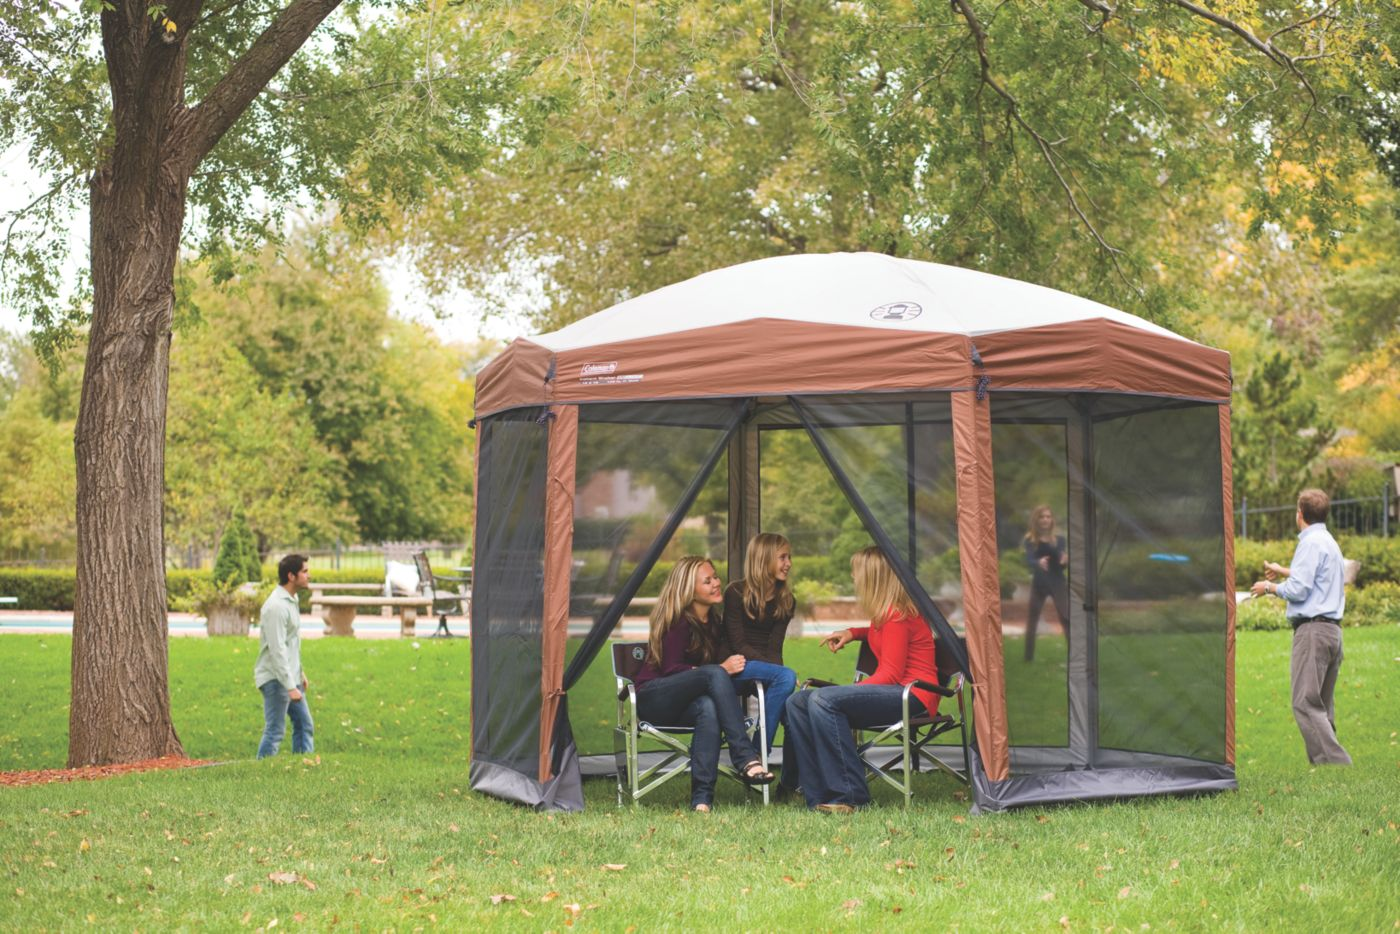 ... Back Home™ 12 x 10 Instant Screenhouse ...  sc 1 st  Coleman : screen house tents - memphite.com